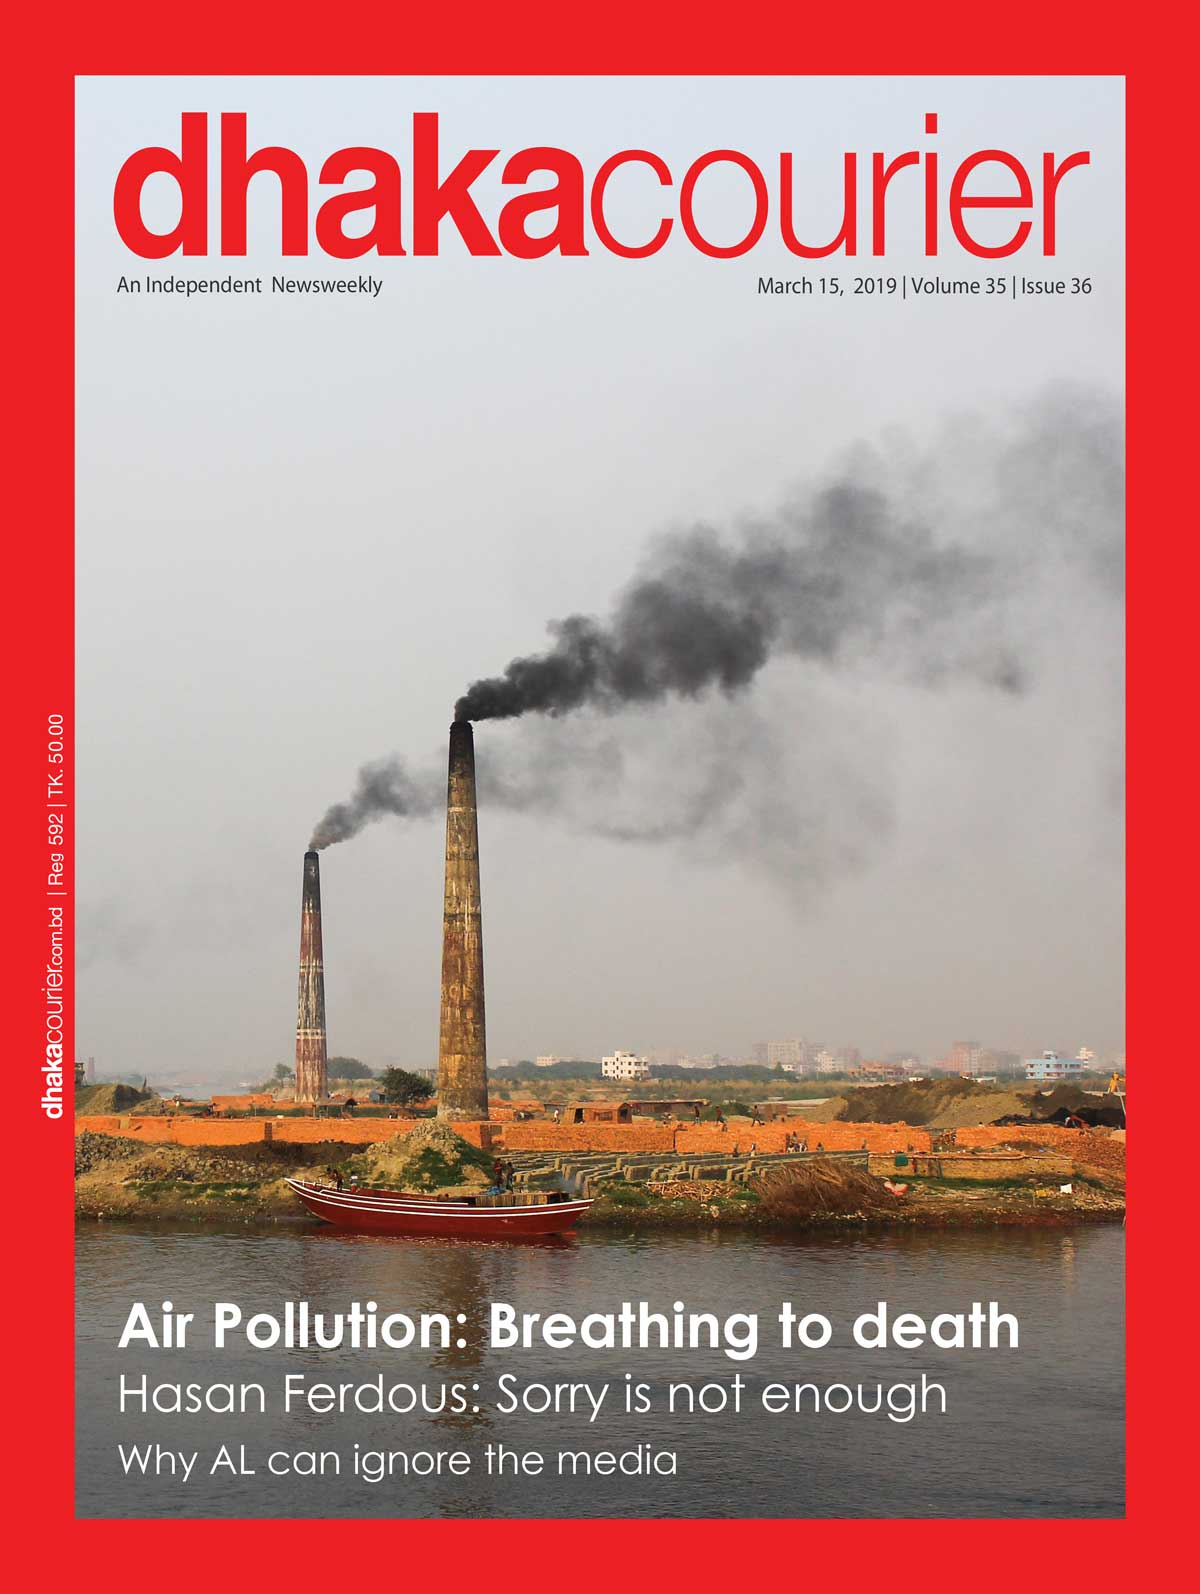 DhakaCourier Vol 35 Issue 36